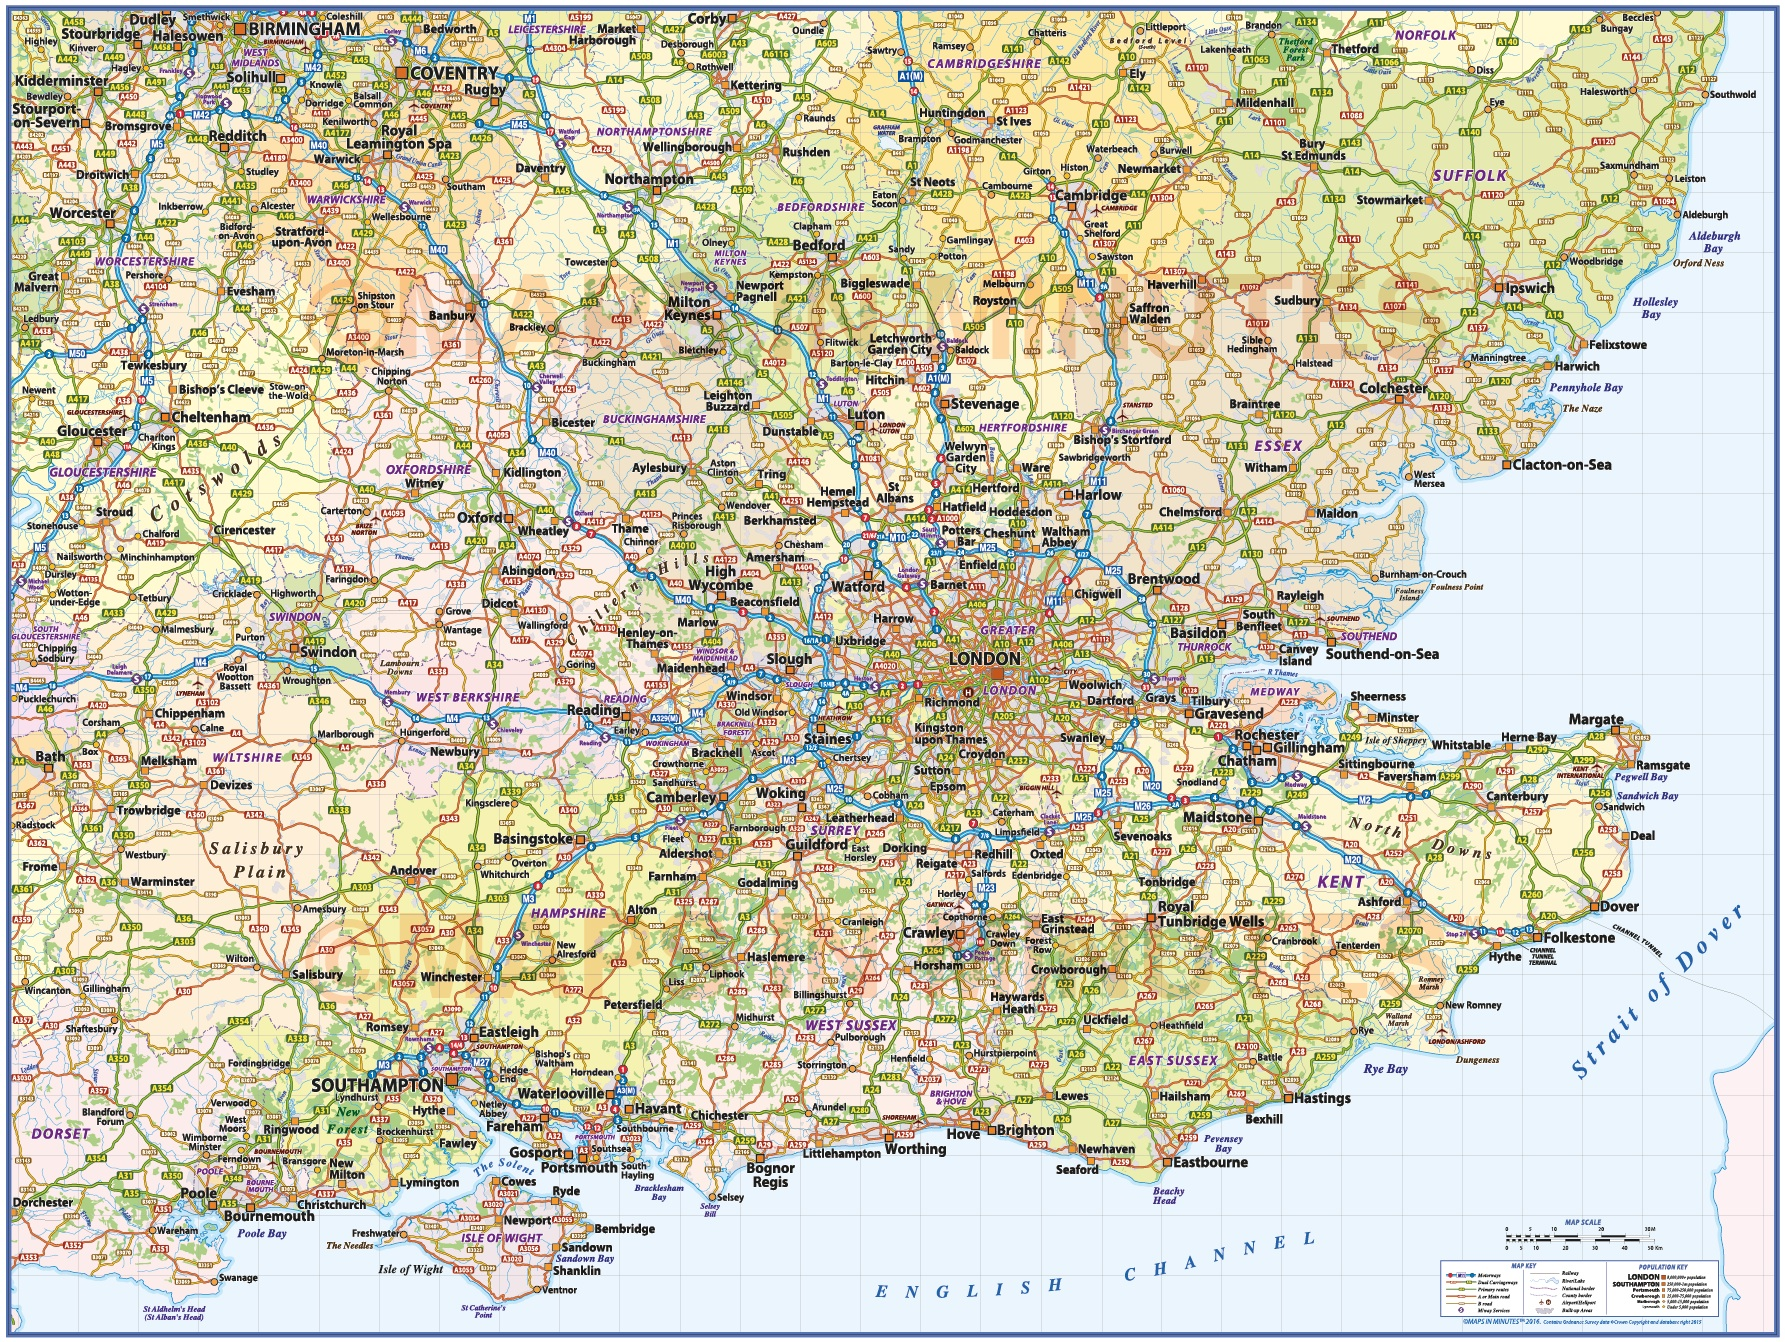 South East England 1st Level County Wall Map With Roads And Rail